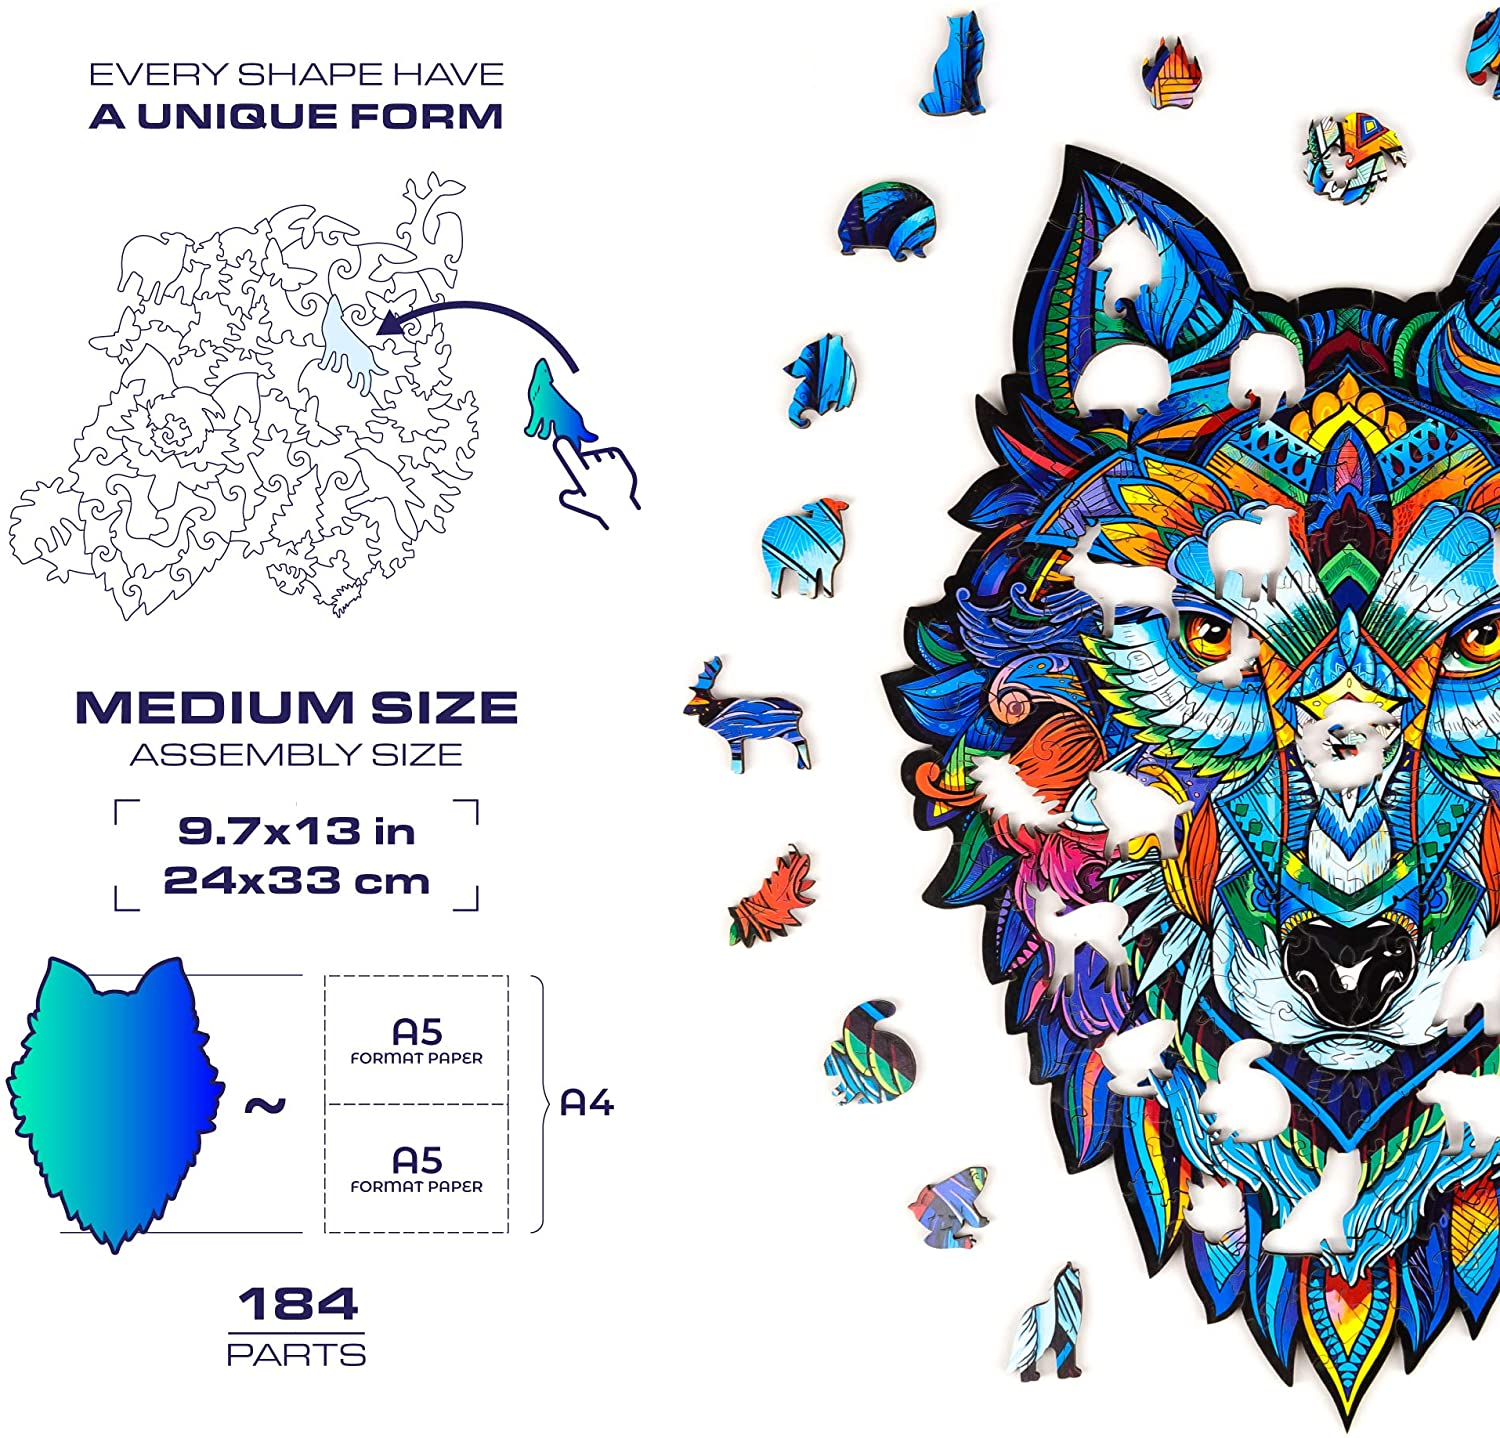 9.7 x 13 inches Unidragon Wooden Puzzle Jigsaw Best Gift for Adults and Kids Unique Shape Jigsaw Pieces Majestic Wolf Medium 184 pieces